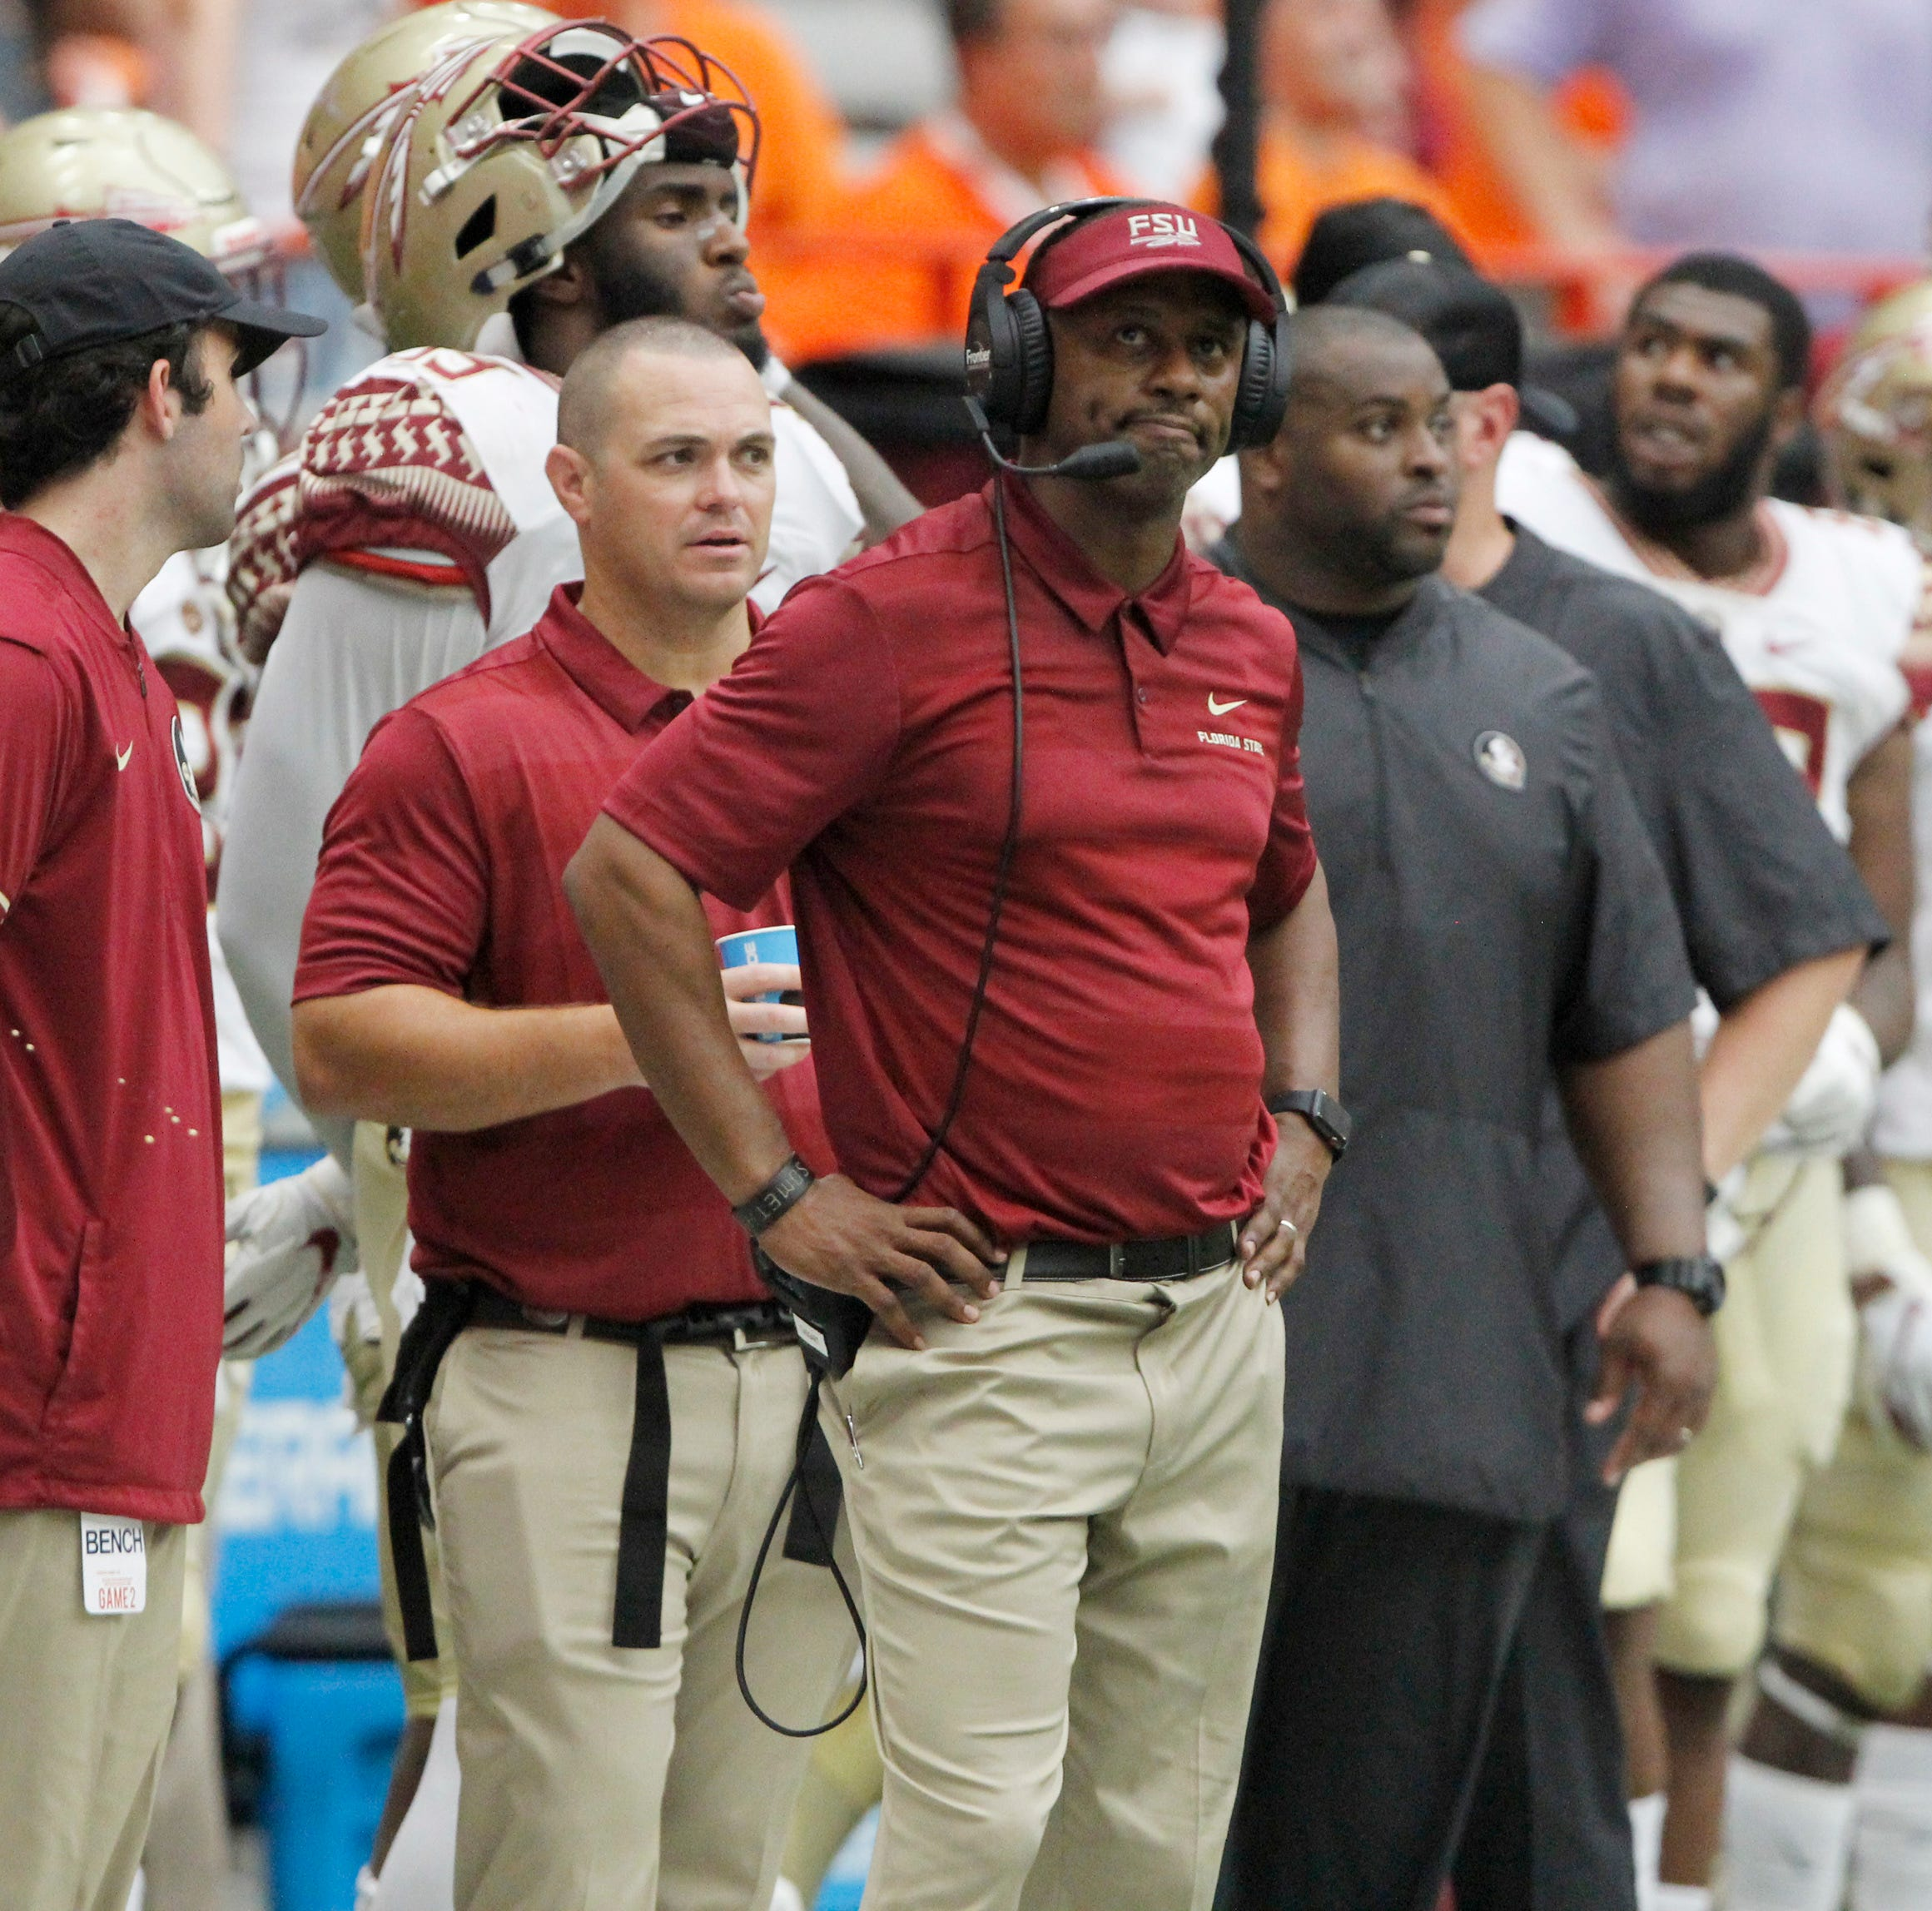 Jimbo Fisher may be part of the FSU problem, but Willie Taggart must be the solution